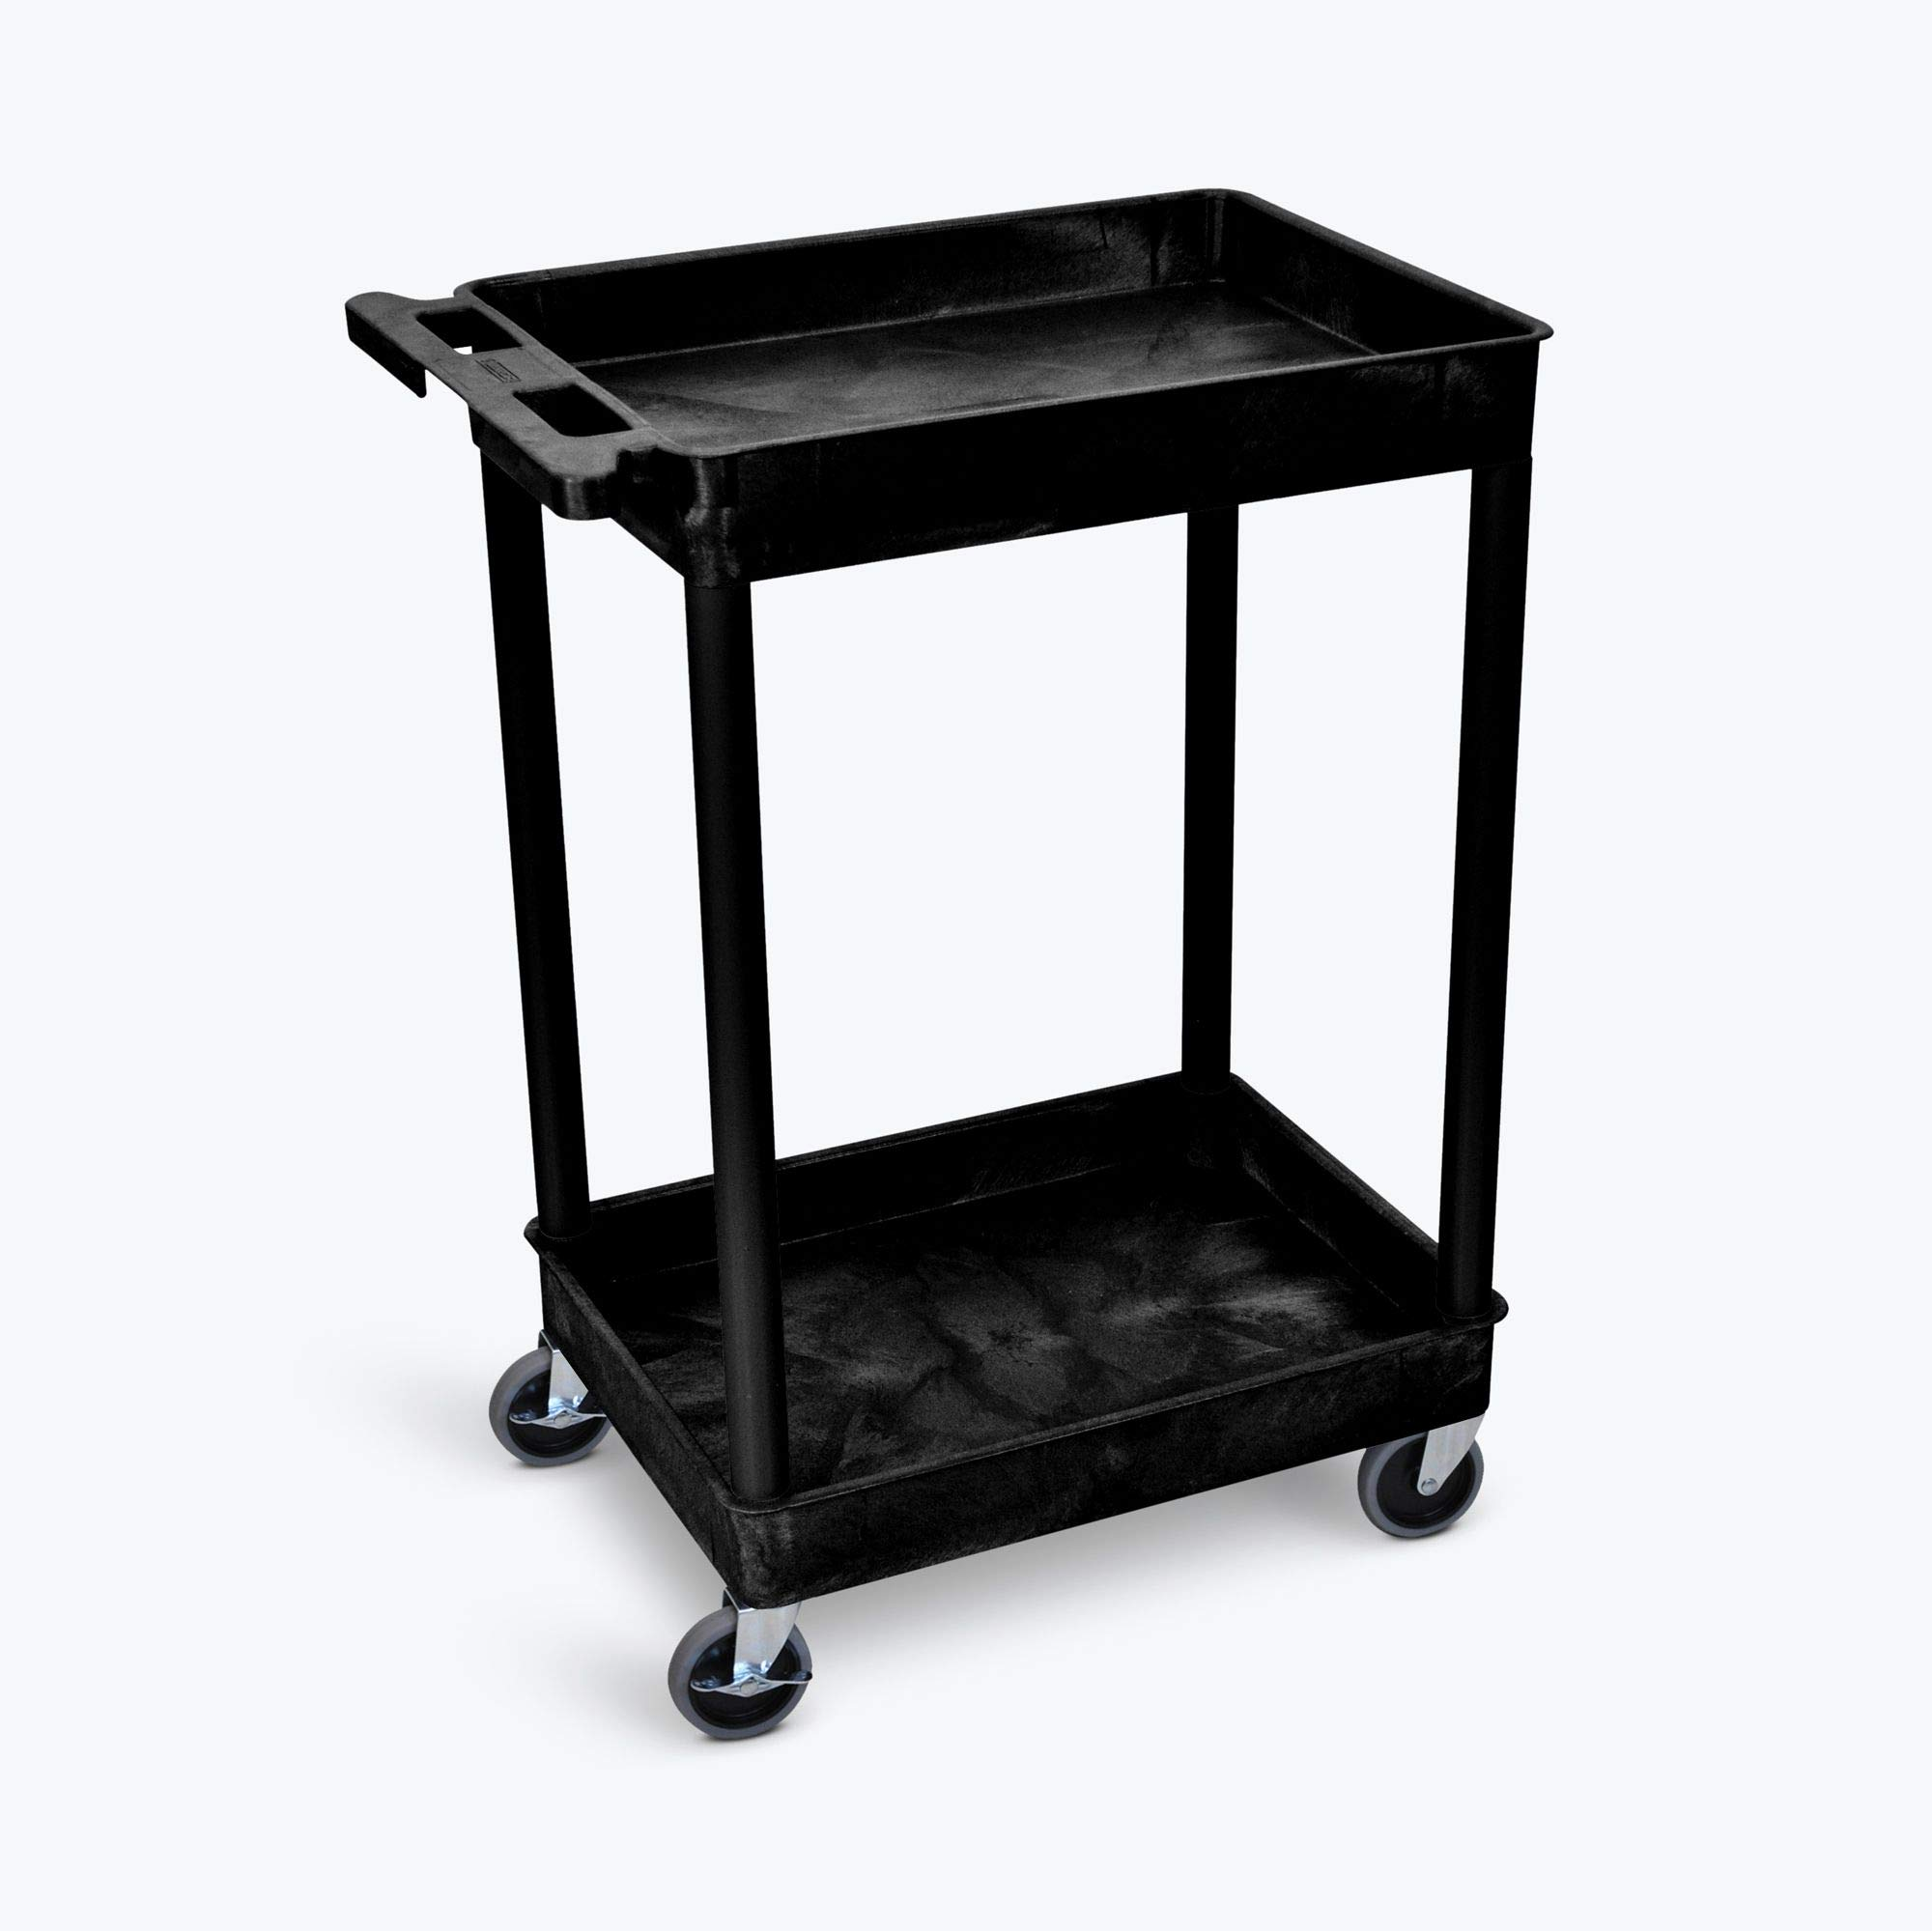 Offex OF-STC11-B 2 Shelf Mobile Home Office Storage Tub Utility Cart, Black by Offex